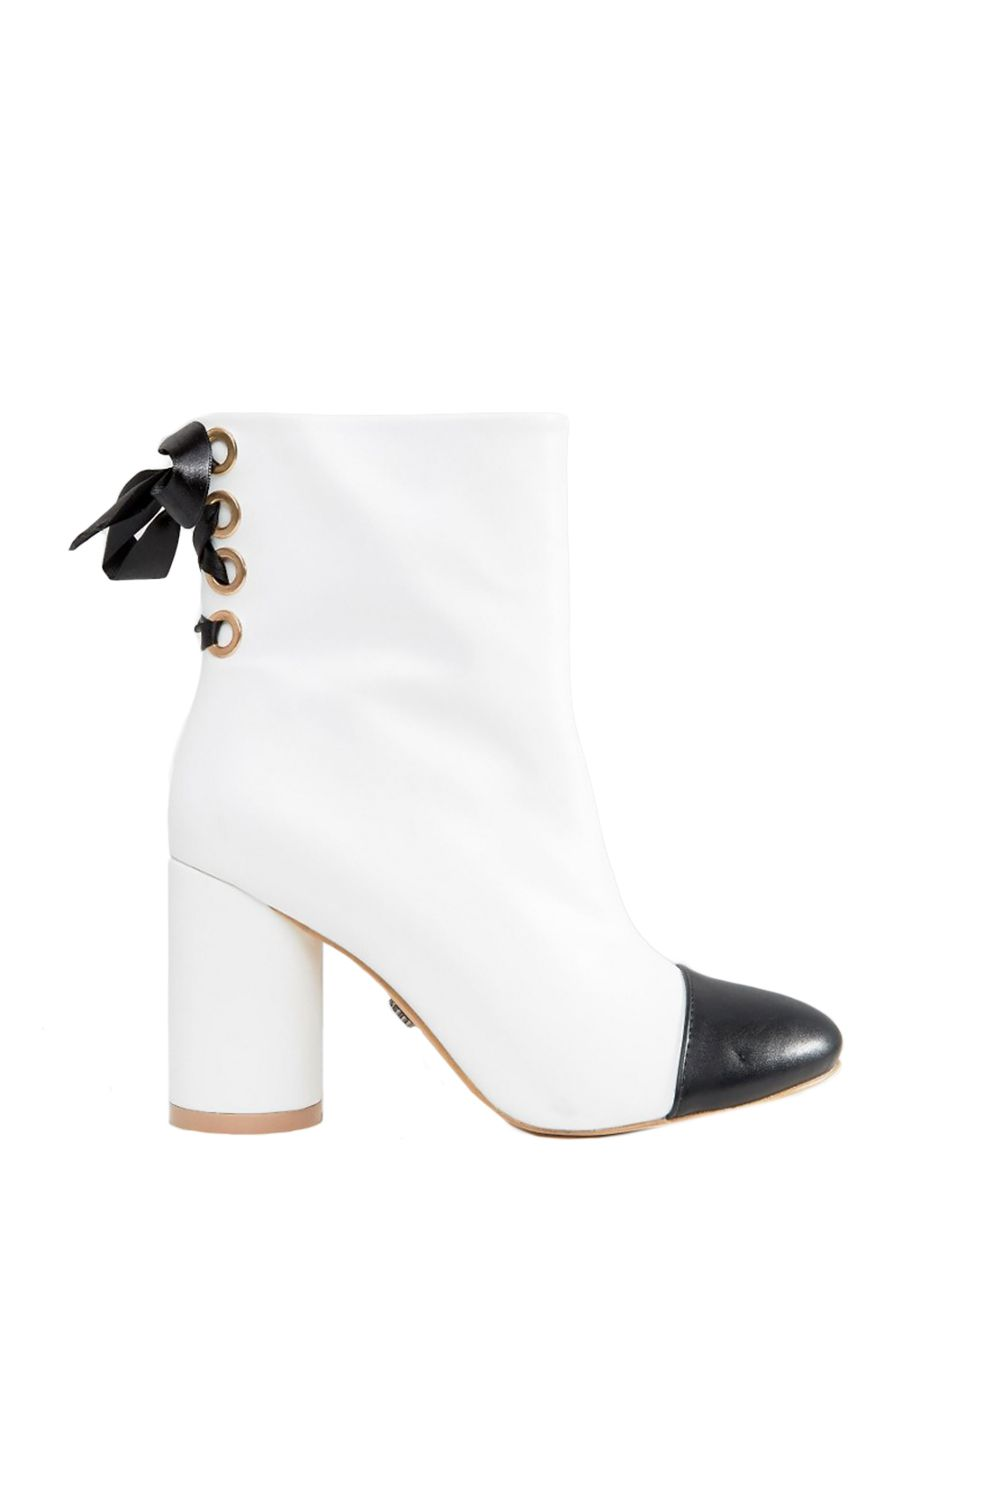 "<p>The&nbsp&#x3B;inspiration: one of NYFW's highlights. The price: low enough you could still&nbsp&#x3B;make rent.</p><p>$56, <a href=""http://www.asos.com/daisy-street/daisy-street-toecap-tie-back-heeled-ankle-boots/prod/pgeproduct.aspx?iid=6902538&amp&#x3B;clr=Whiteblacktoecap&amp&#x3B;SearchQuery=&amp&#x3B;cid=4172&amp&#x3B;pgesize=36&amp&#x3B;pge=0&amp&#x3B;totalstyles=257&amp&#x3B;gridsize=3&amp&#x3B;gridrow=2&amp&#x3B;gridcolumn=3"" target=""_blank"">asos.com</a>.</p>"